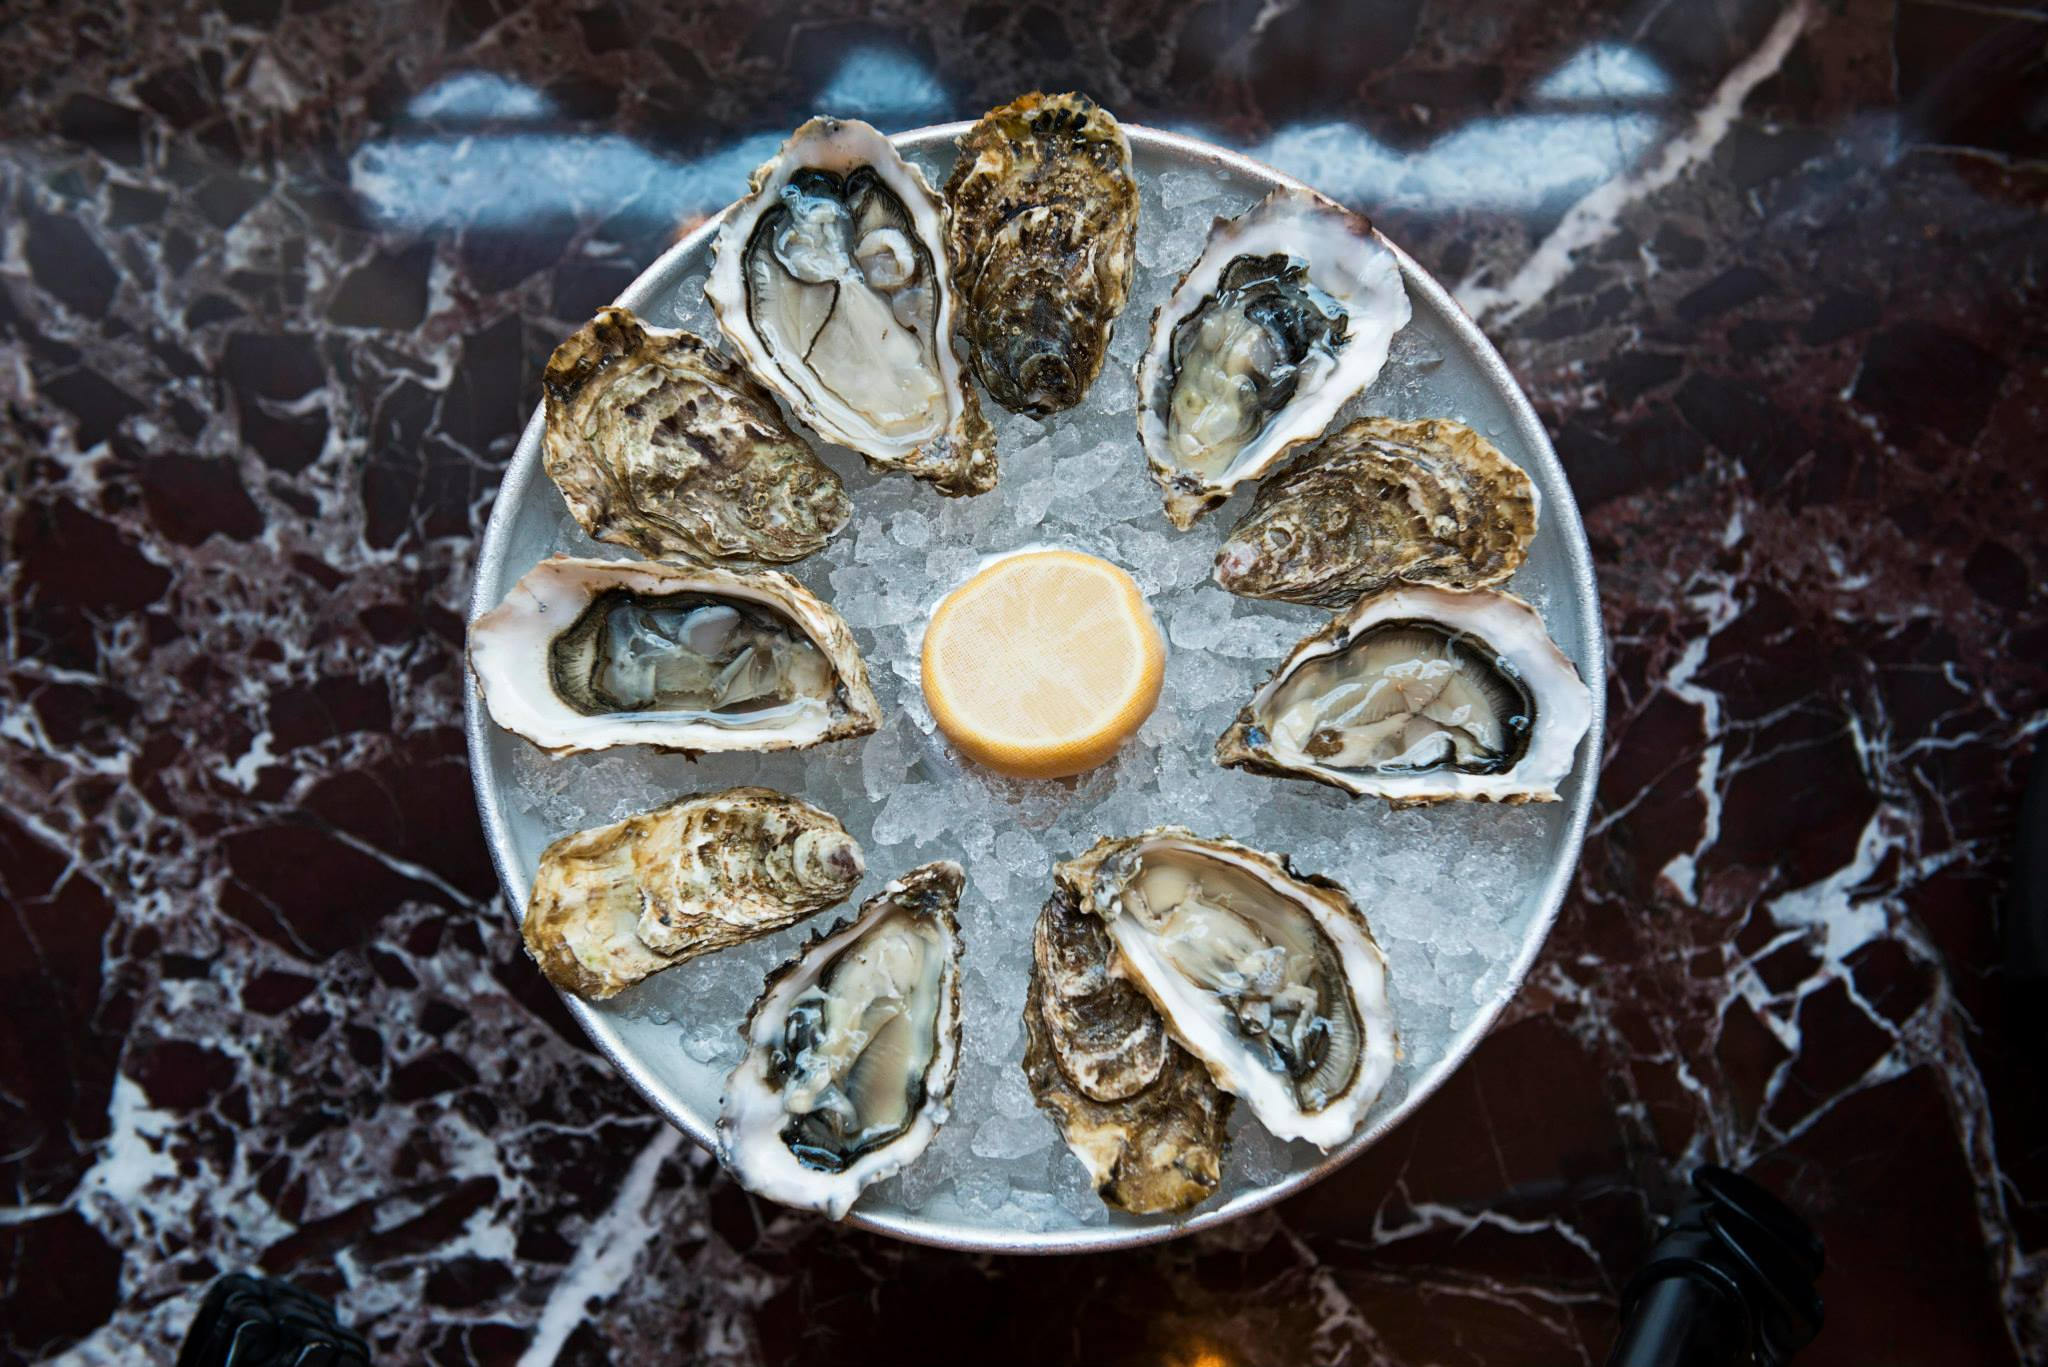 Oysters at Brasserie Zedel, Piccadilly